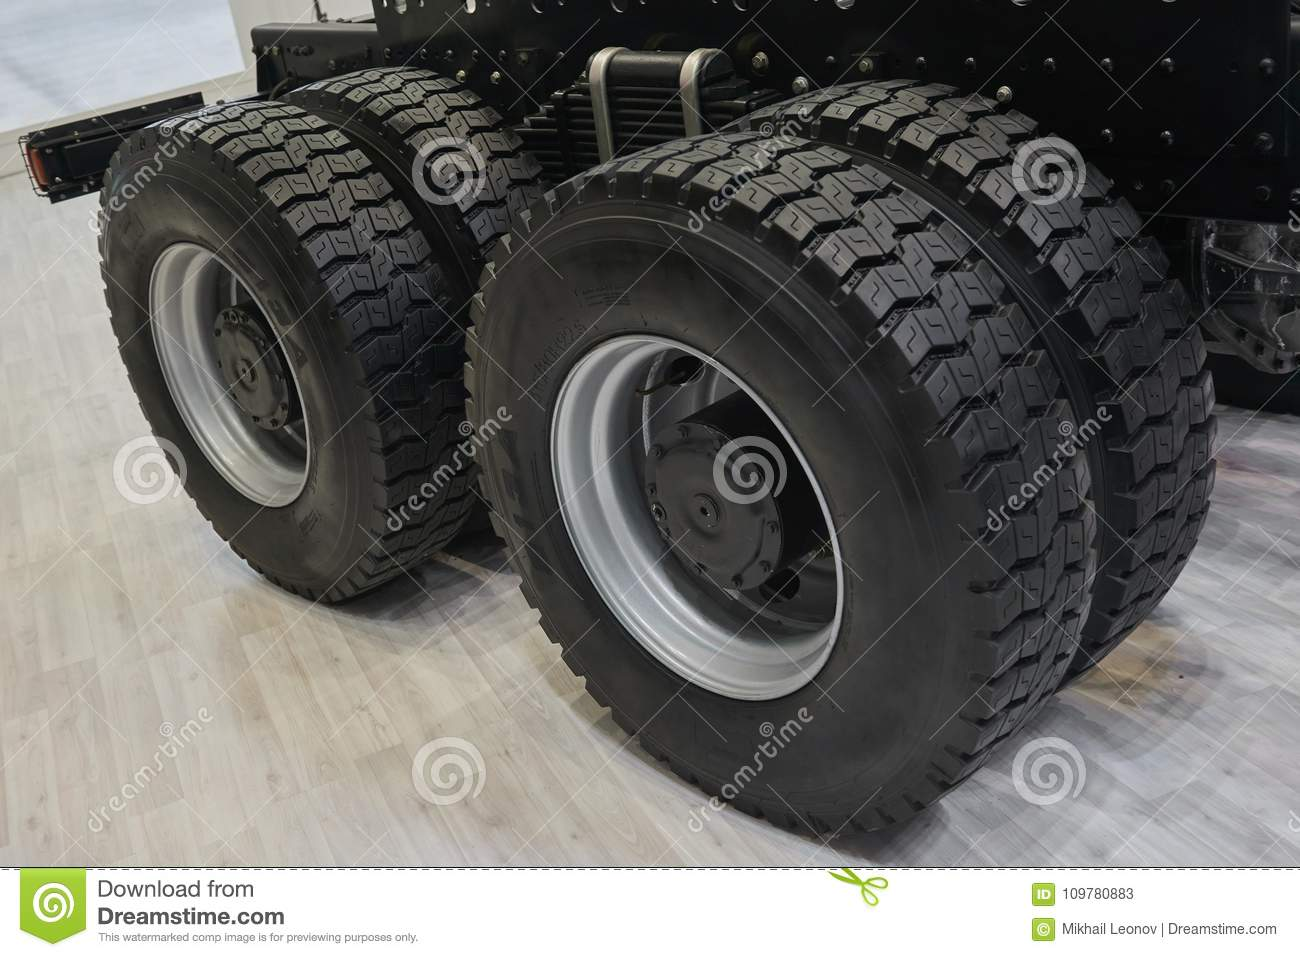 Truck Wheels And Tires >> View On New Truck Wheels And Tires On Truck Chassis Truck Wheel Rim